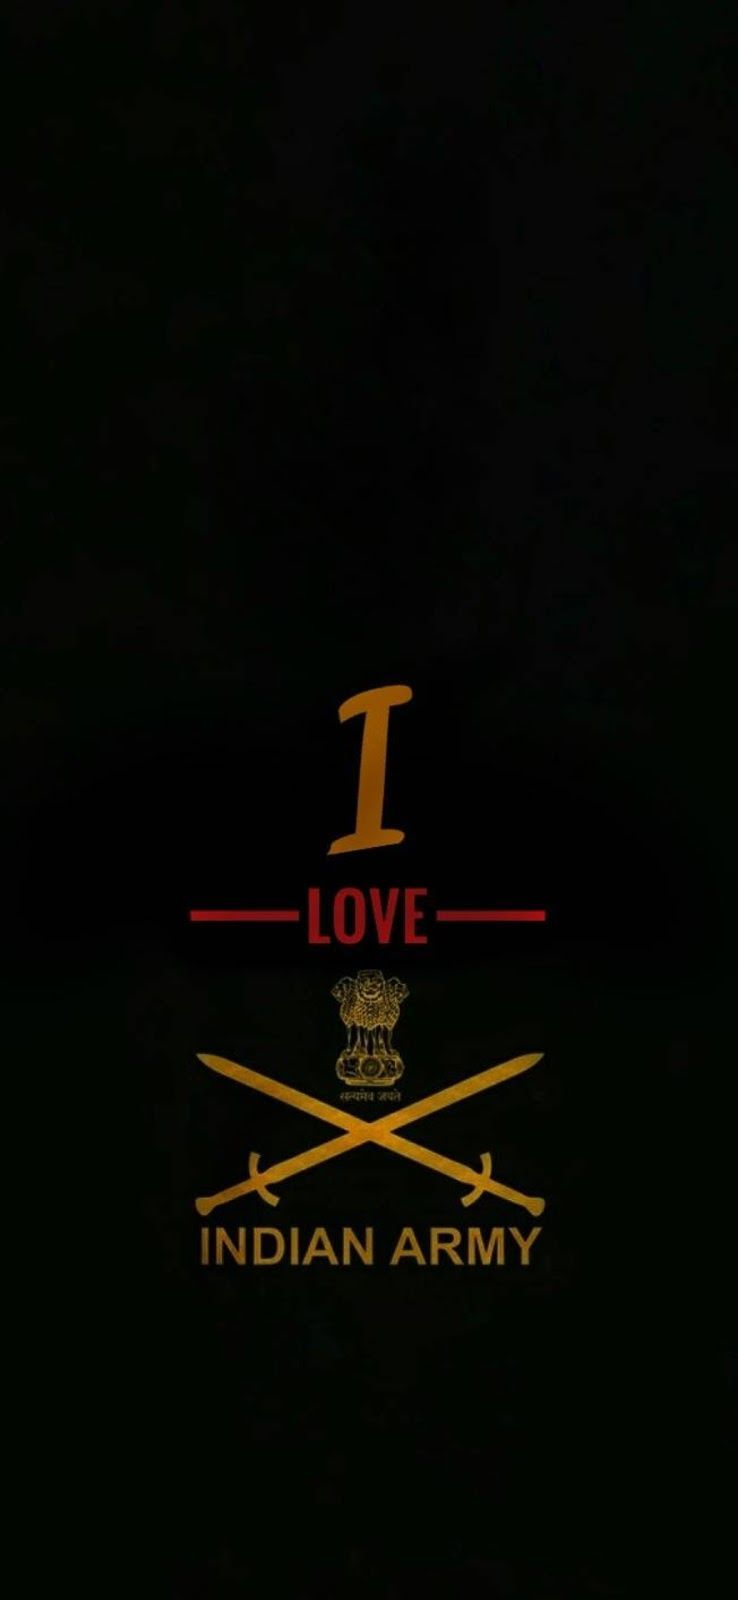 Happy Independence Day India Indian Happy Independence Day India Indian Army Wallpapers Army Wallpaper Indian Army Quotes Lock screen iphone indian army wallpaper